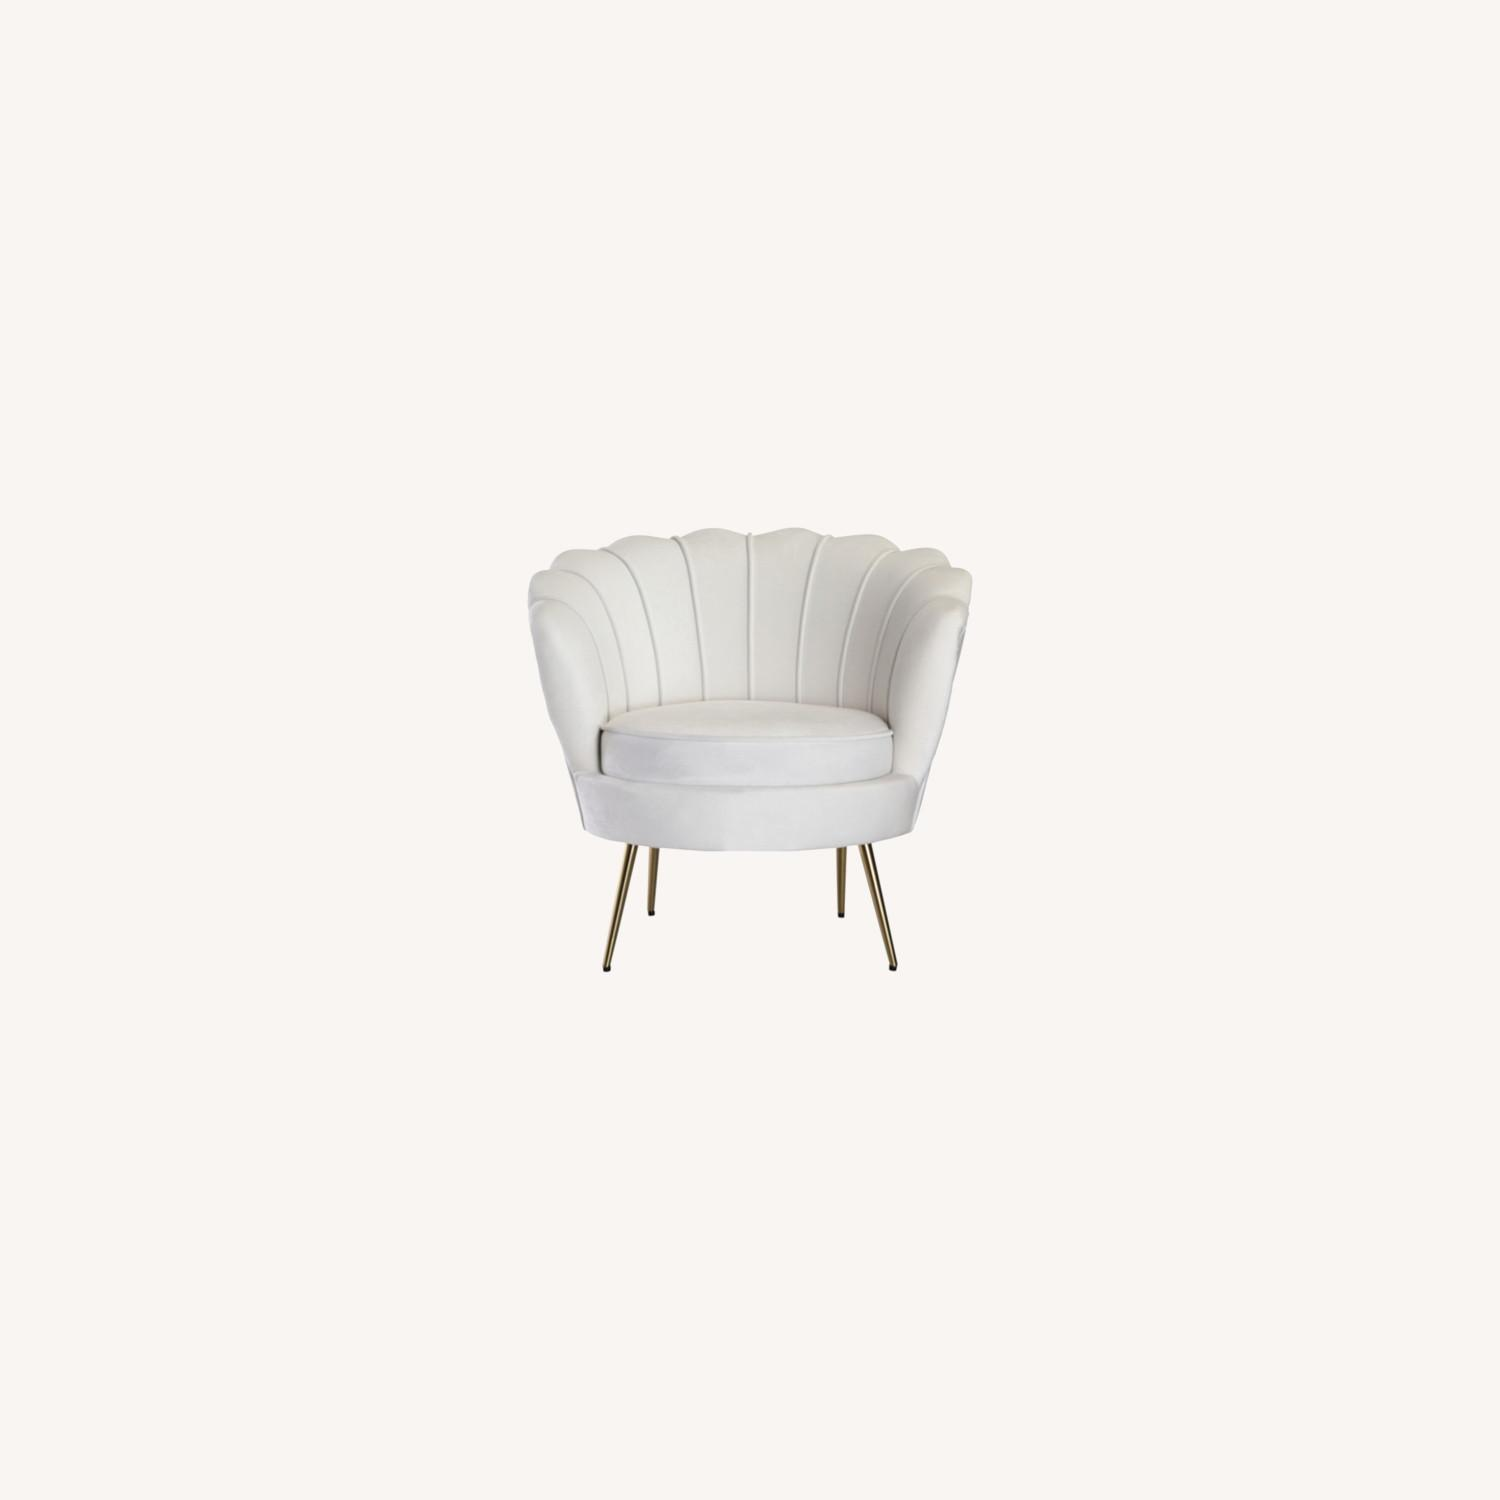 Modern Bridal Chair In White Suede Fabric - image-4